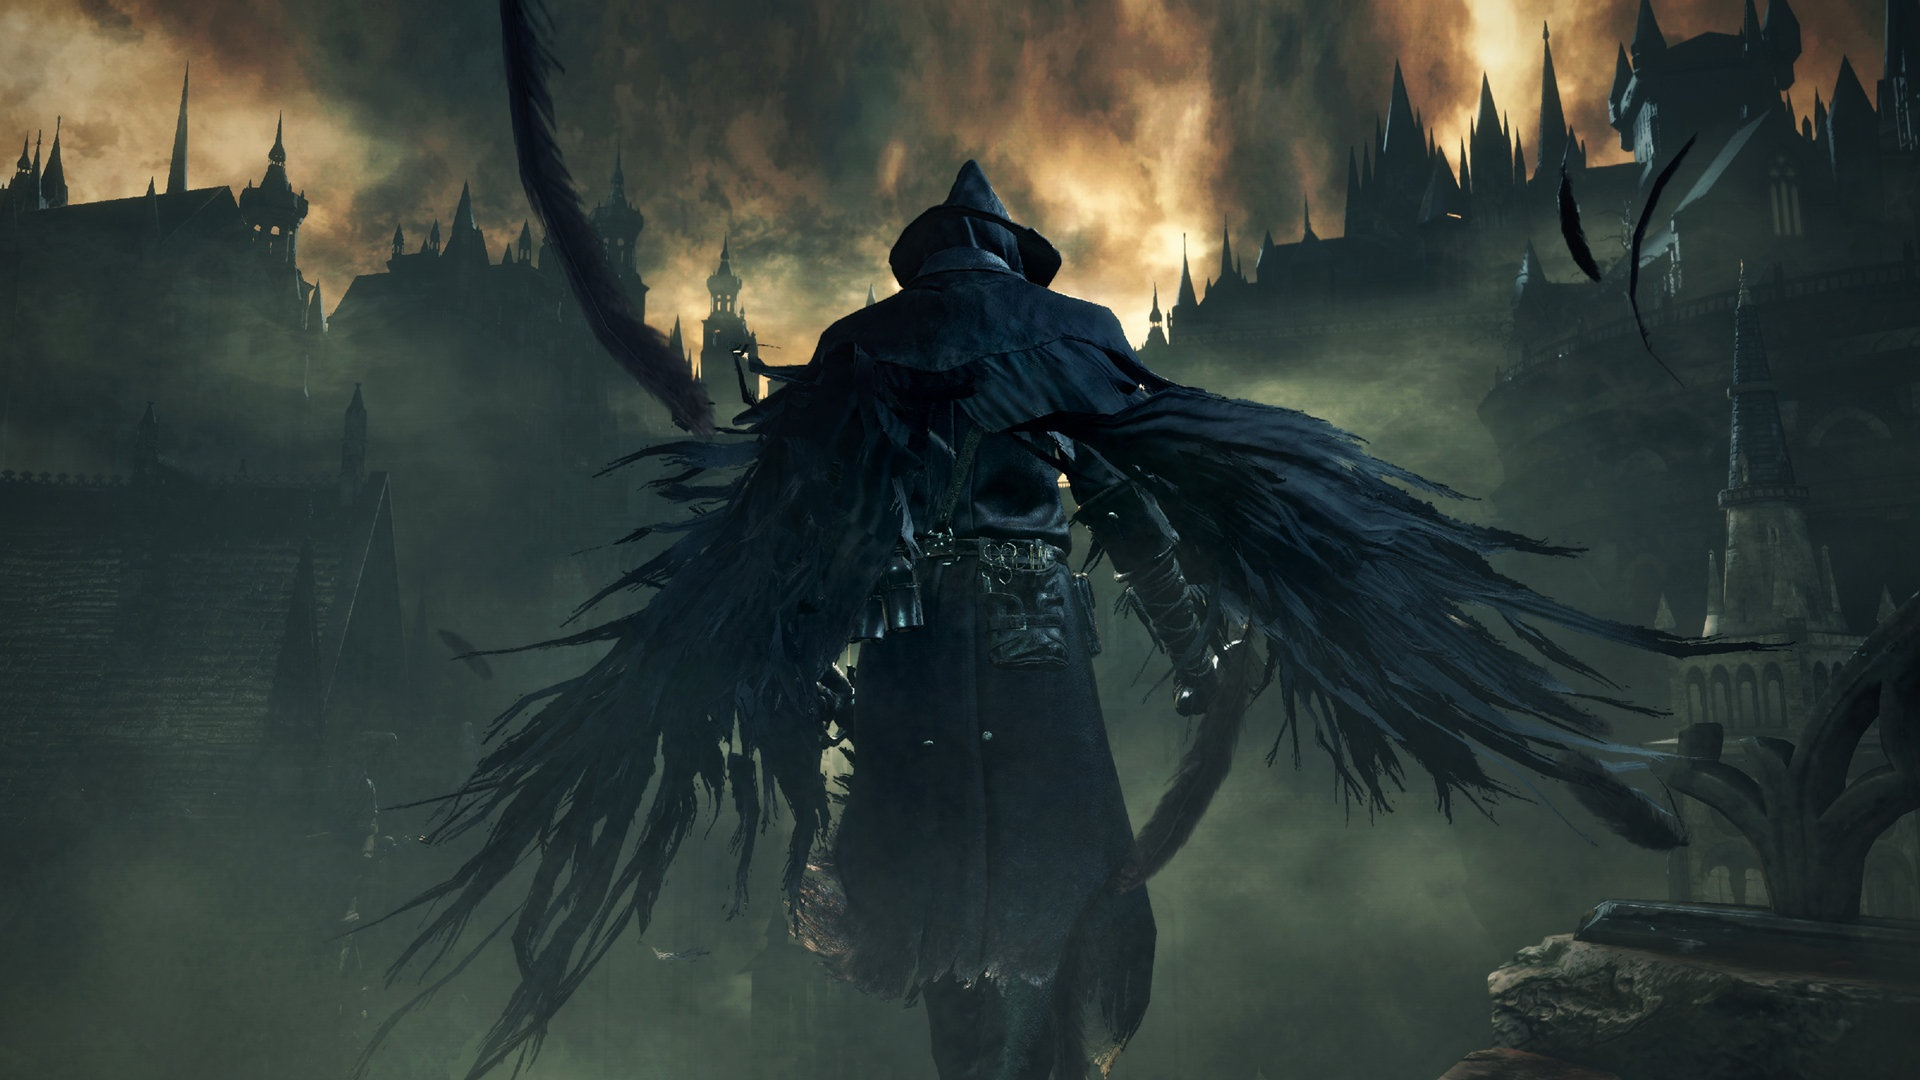 Bloodborne dark souls wallpapers 1920x1080 366738 bloodborne dark souls 1920 x 1080 voltagebd Images